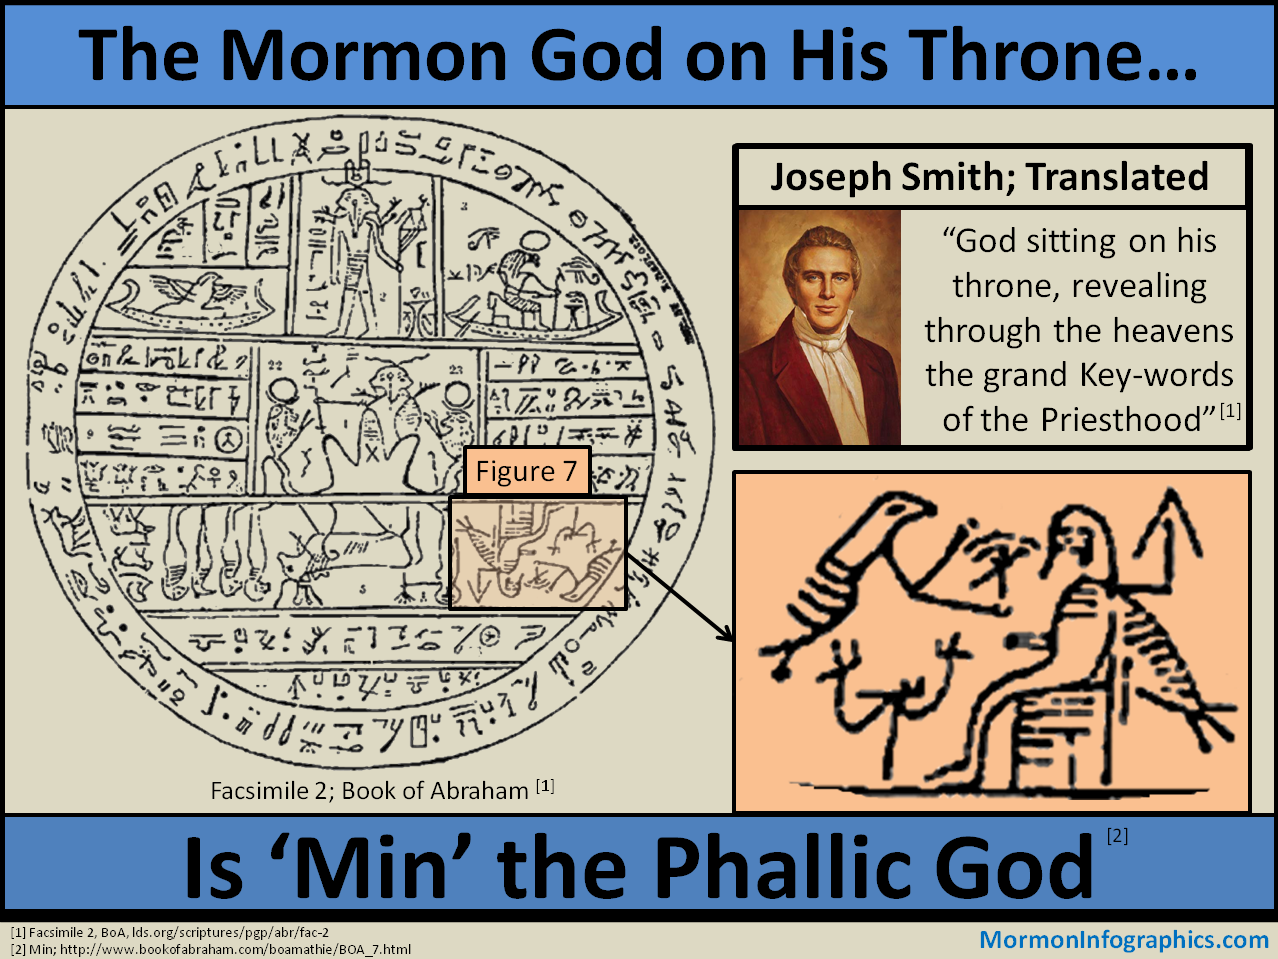 The Mormon god sitting on his throne is Min the Phallic God